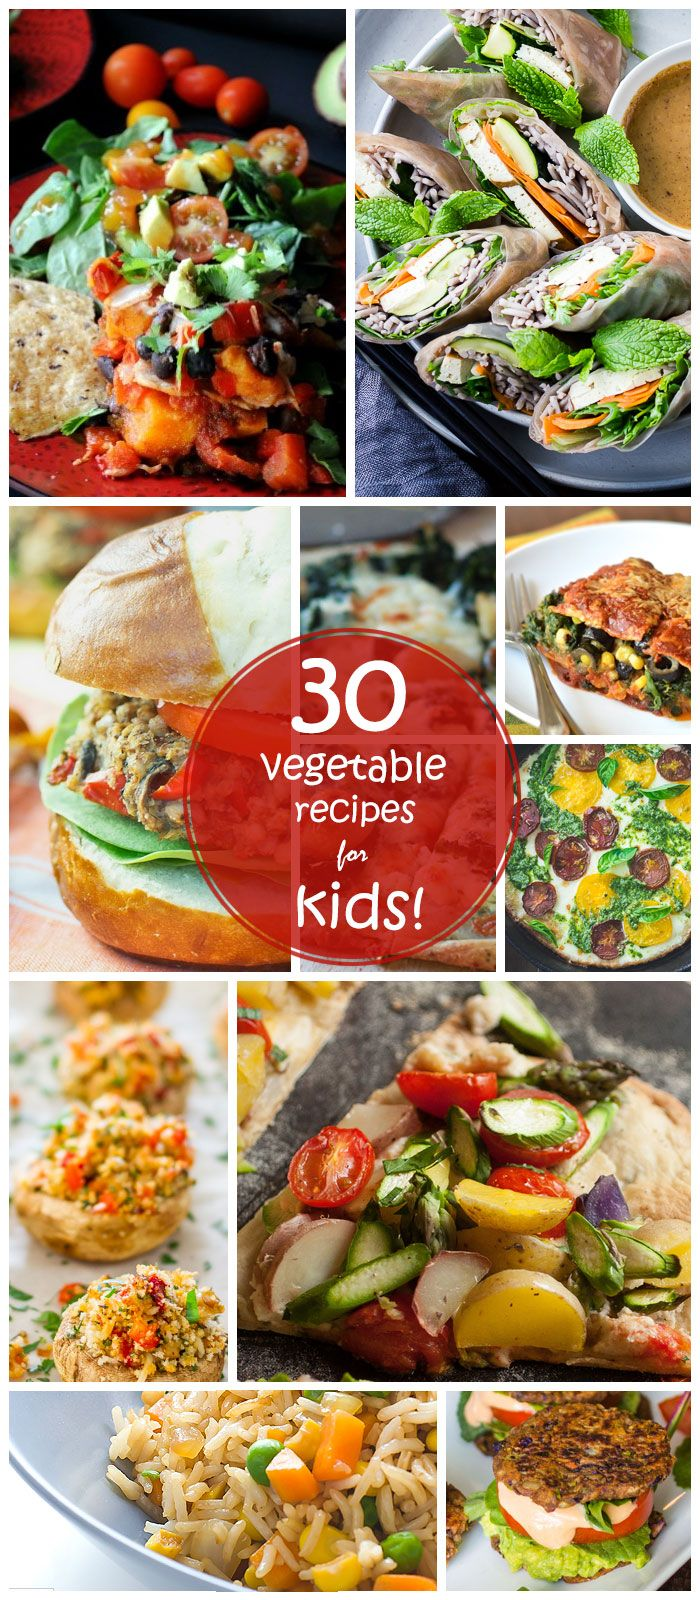 Click Pic for 30 Easy Vegetarian Recipes for Kids for Dinner | Quick and Easy Healthy Meals on a Budget